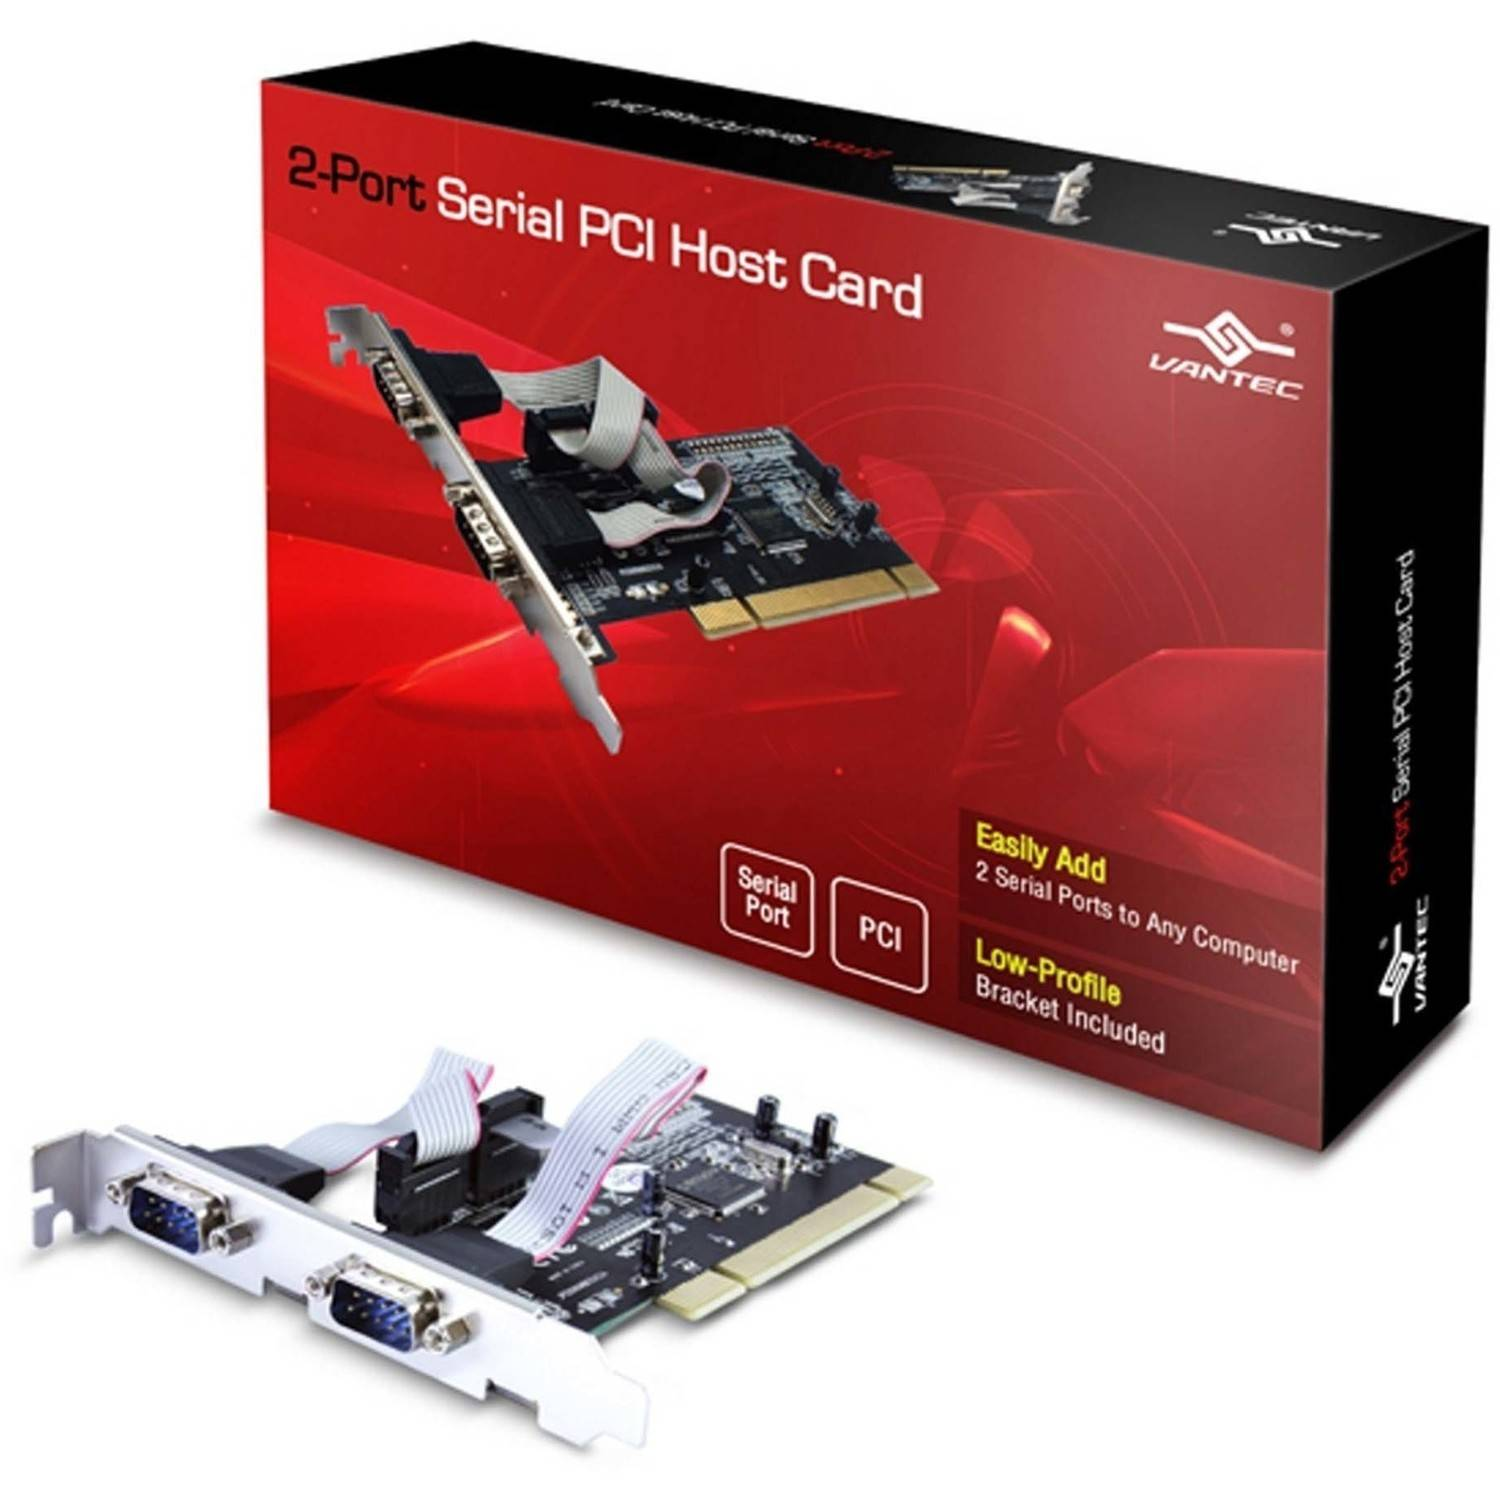 Vantec UGT-PC20SR 2-Port Serial PCI Host Card, Silver